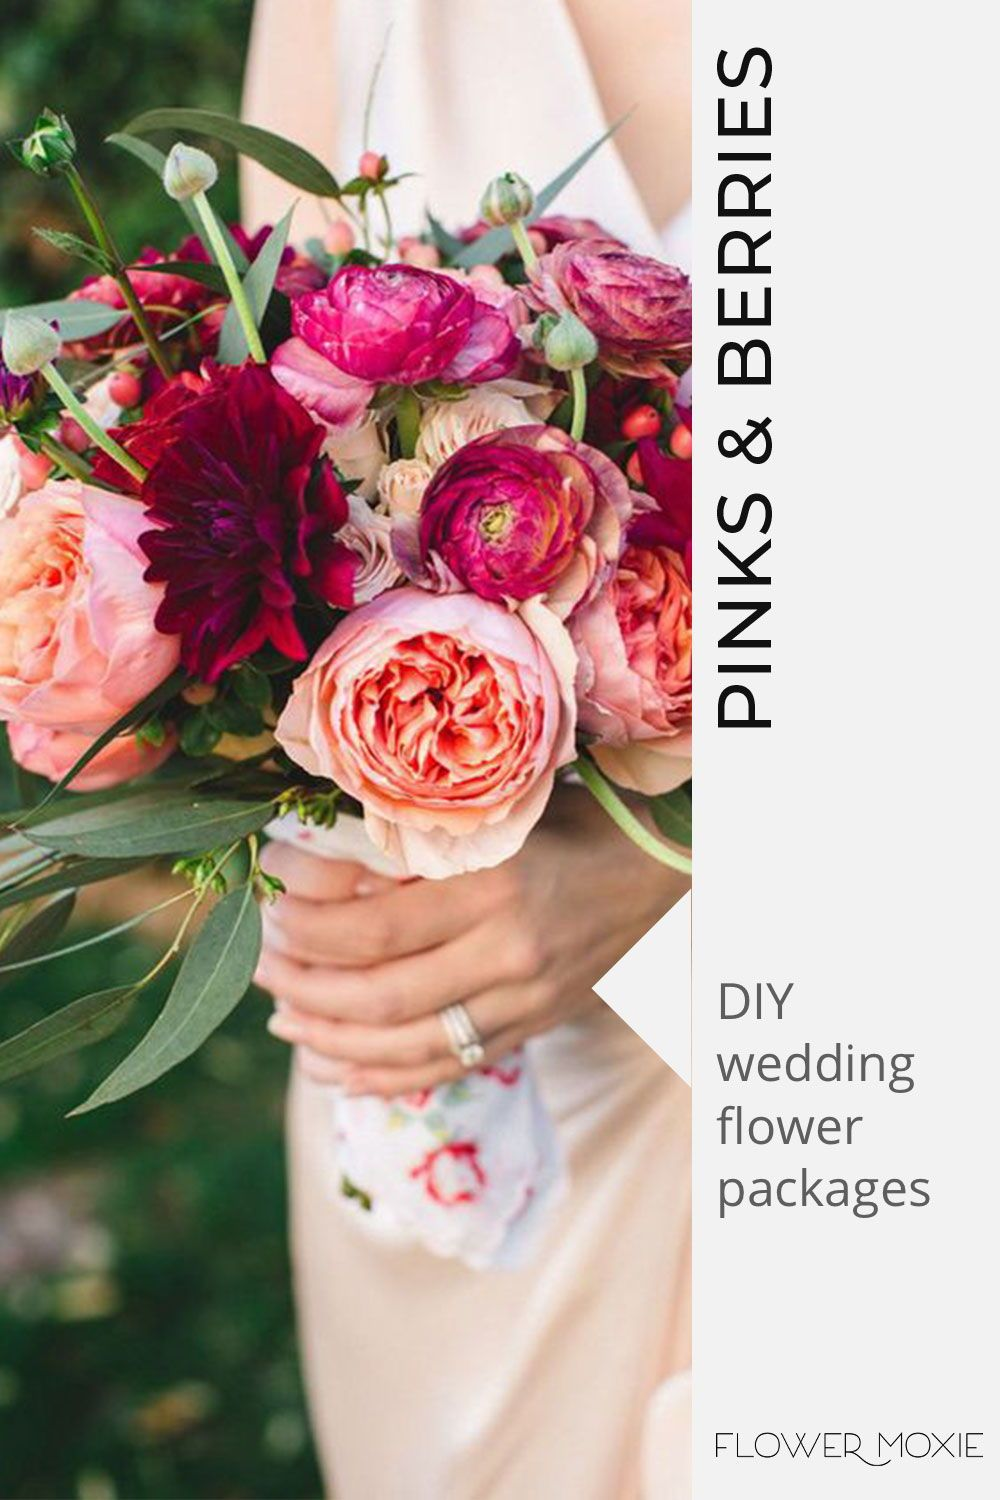 Get Inspired By Our Wedding Flower Packages Mix Match Flowers To Achieve The Look You Diy Bridesmaid Bouquet Wedding Flower Packages Online Wedding Flowers